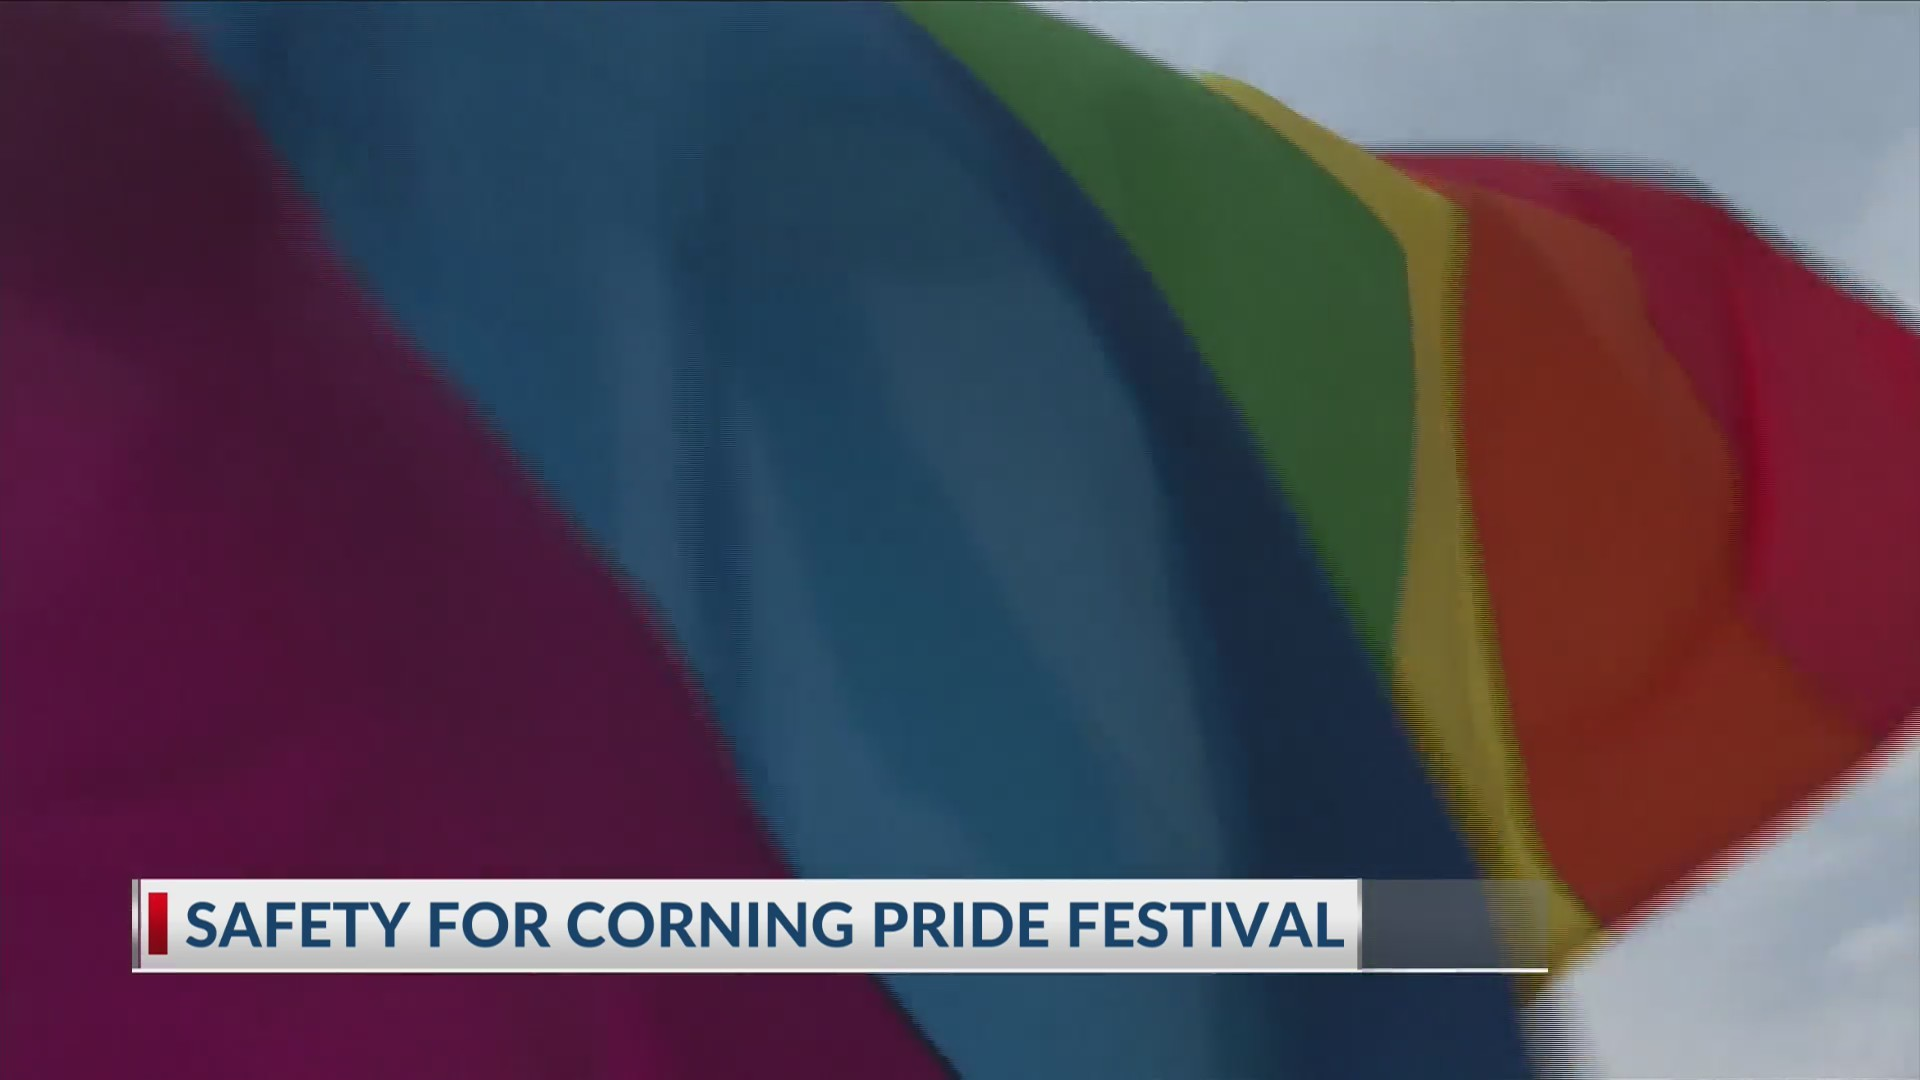 Safety for Corning Pride